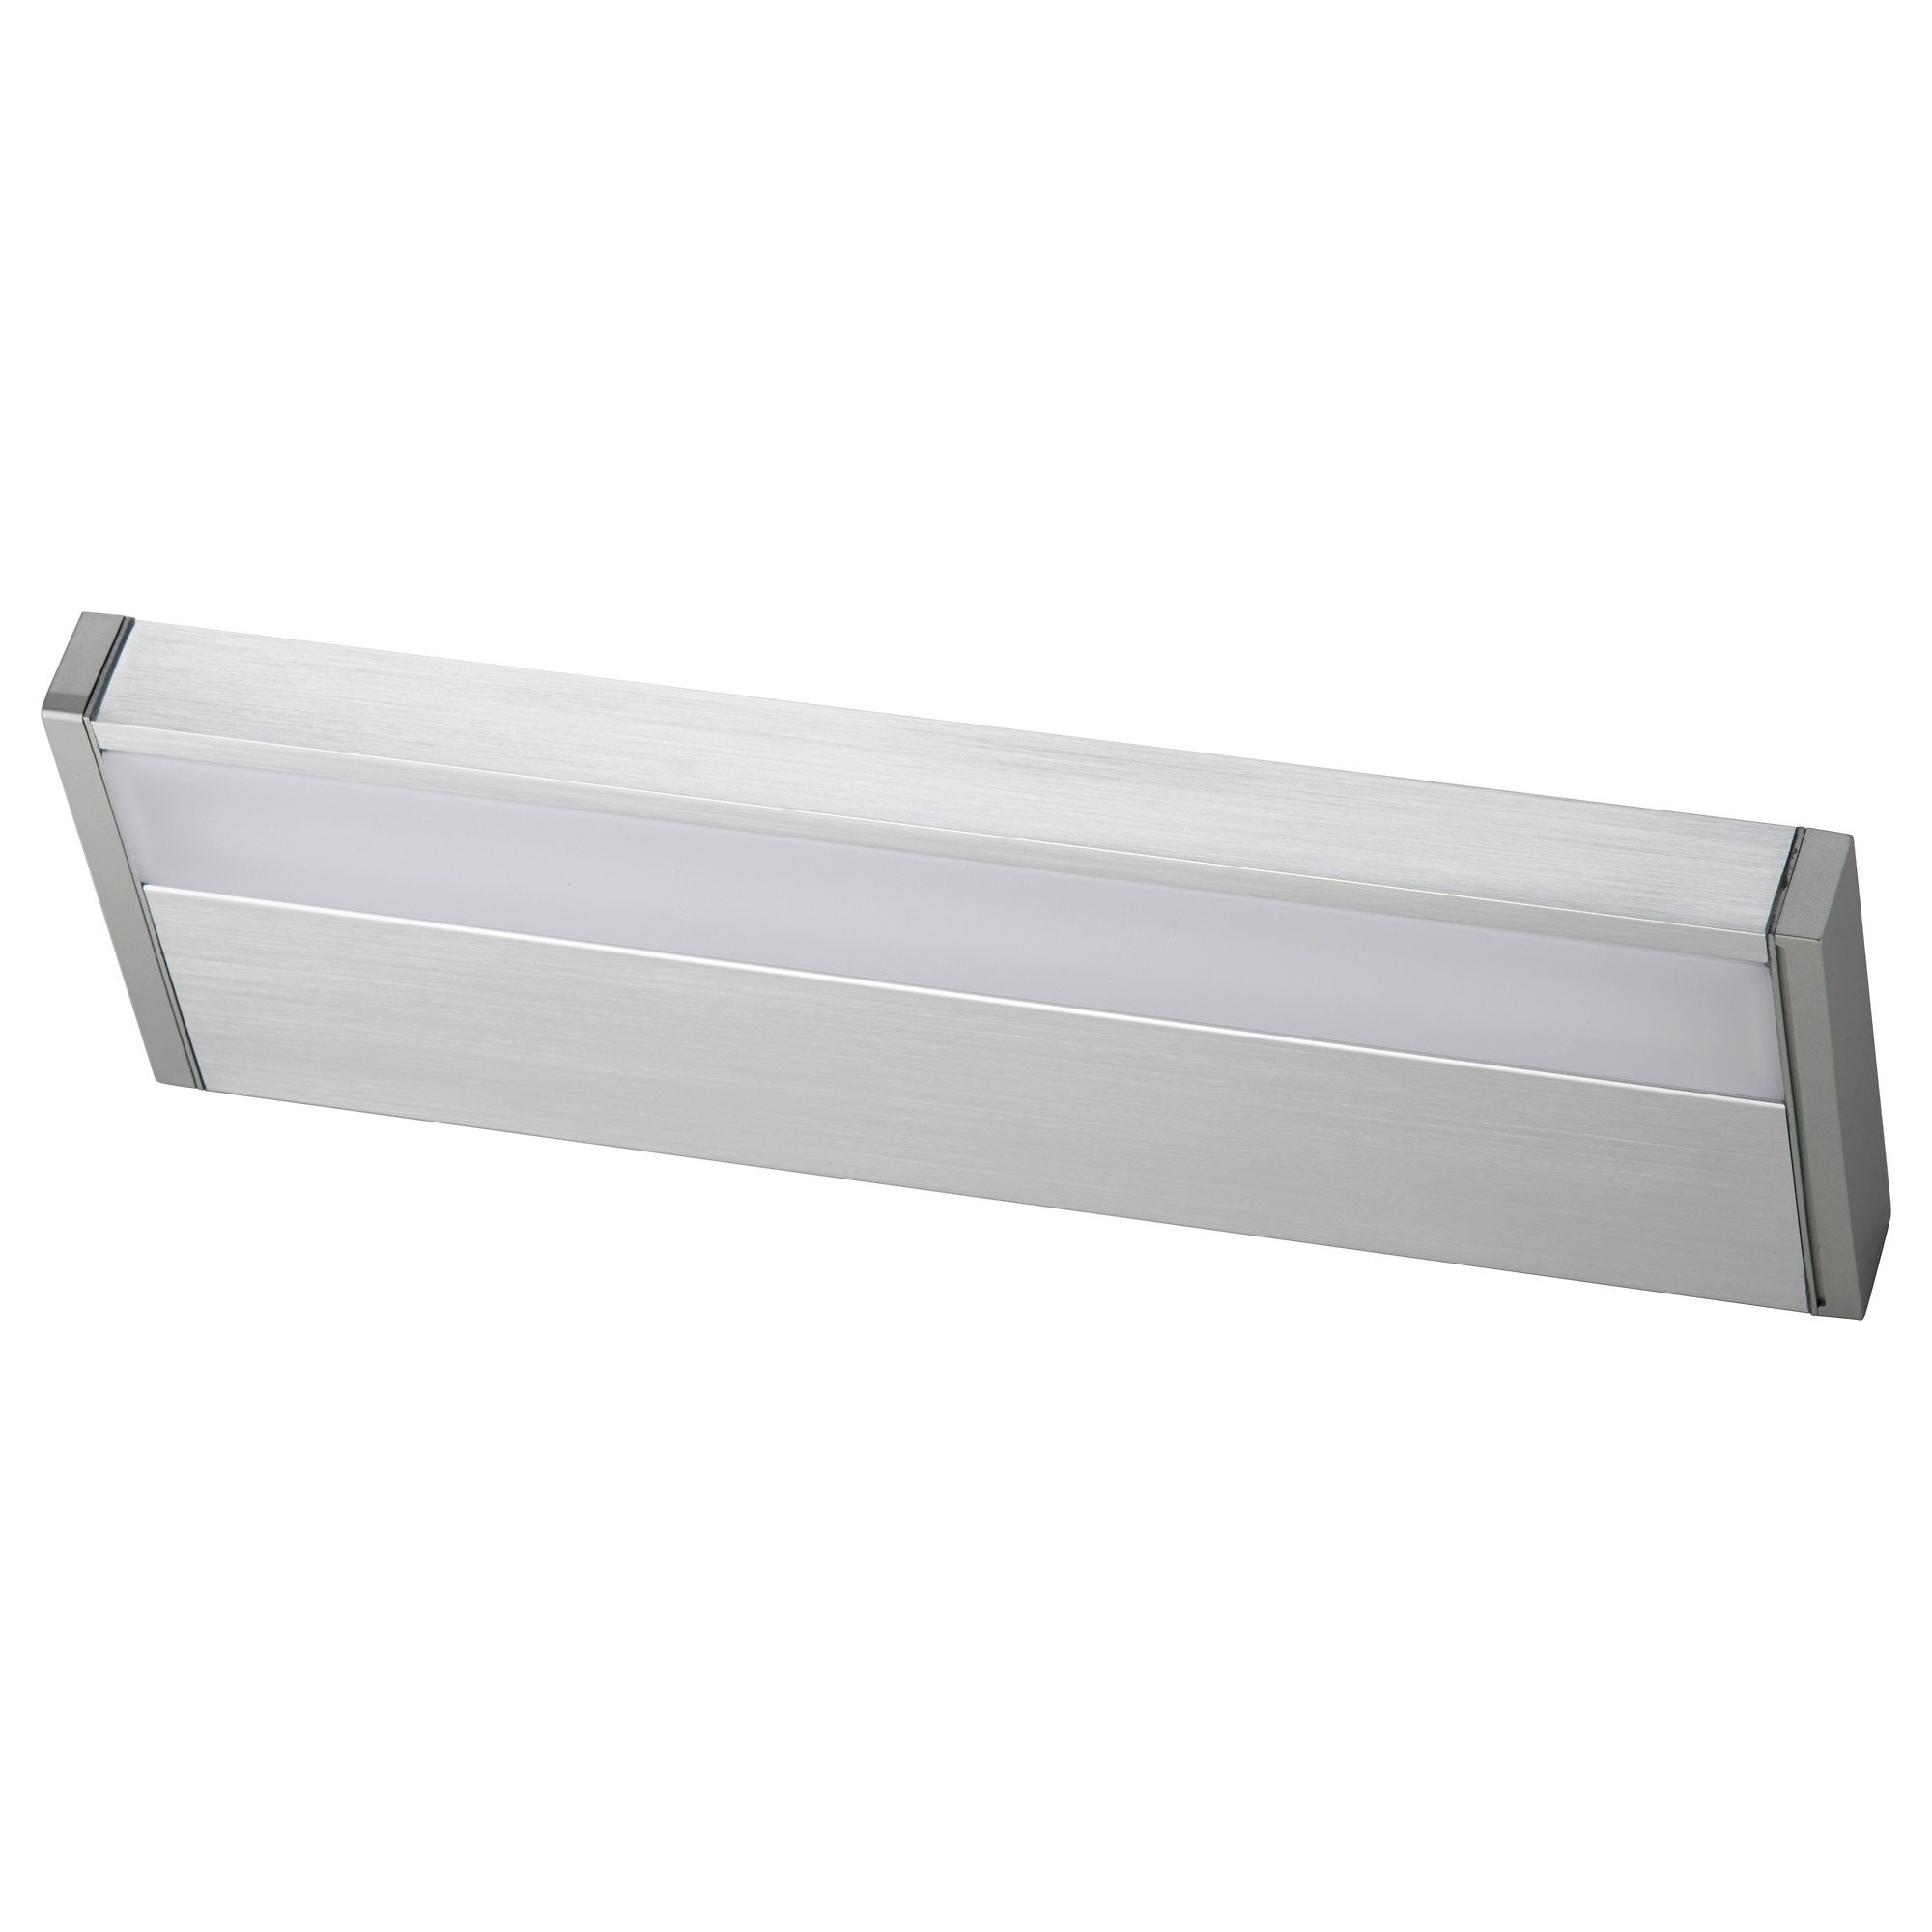 GODMORGON LED Cabinet/wall Light   IKEA